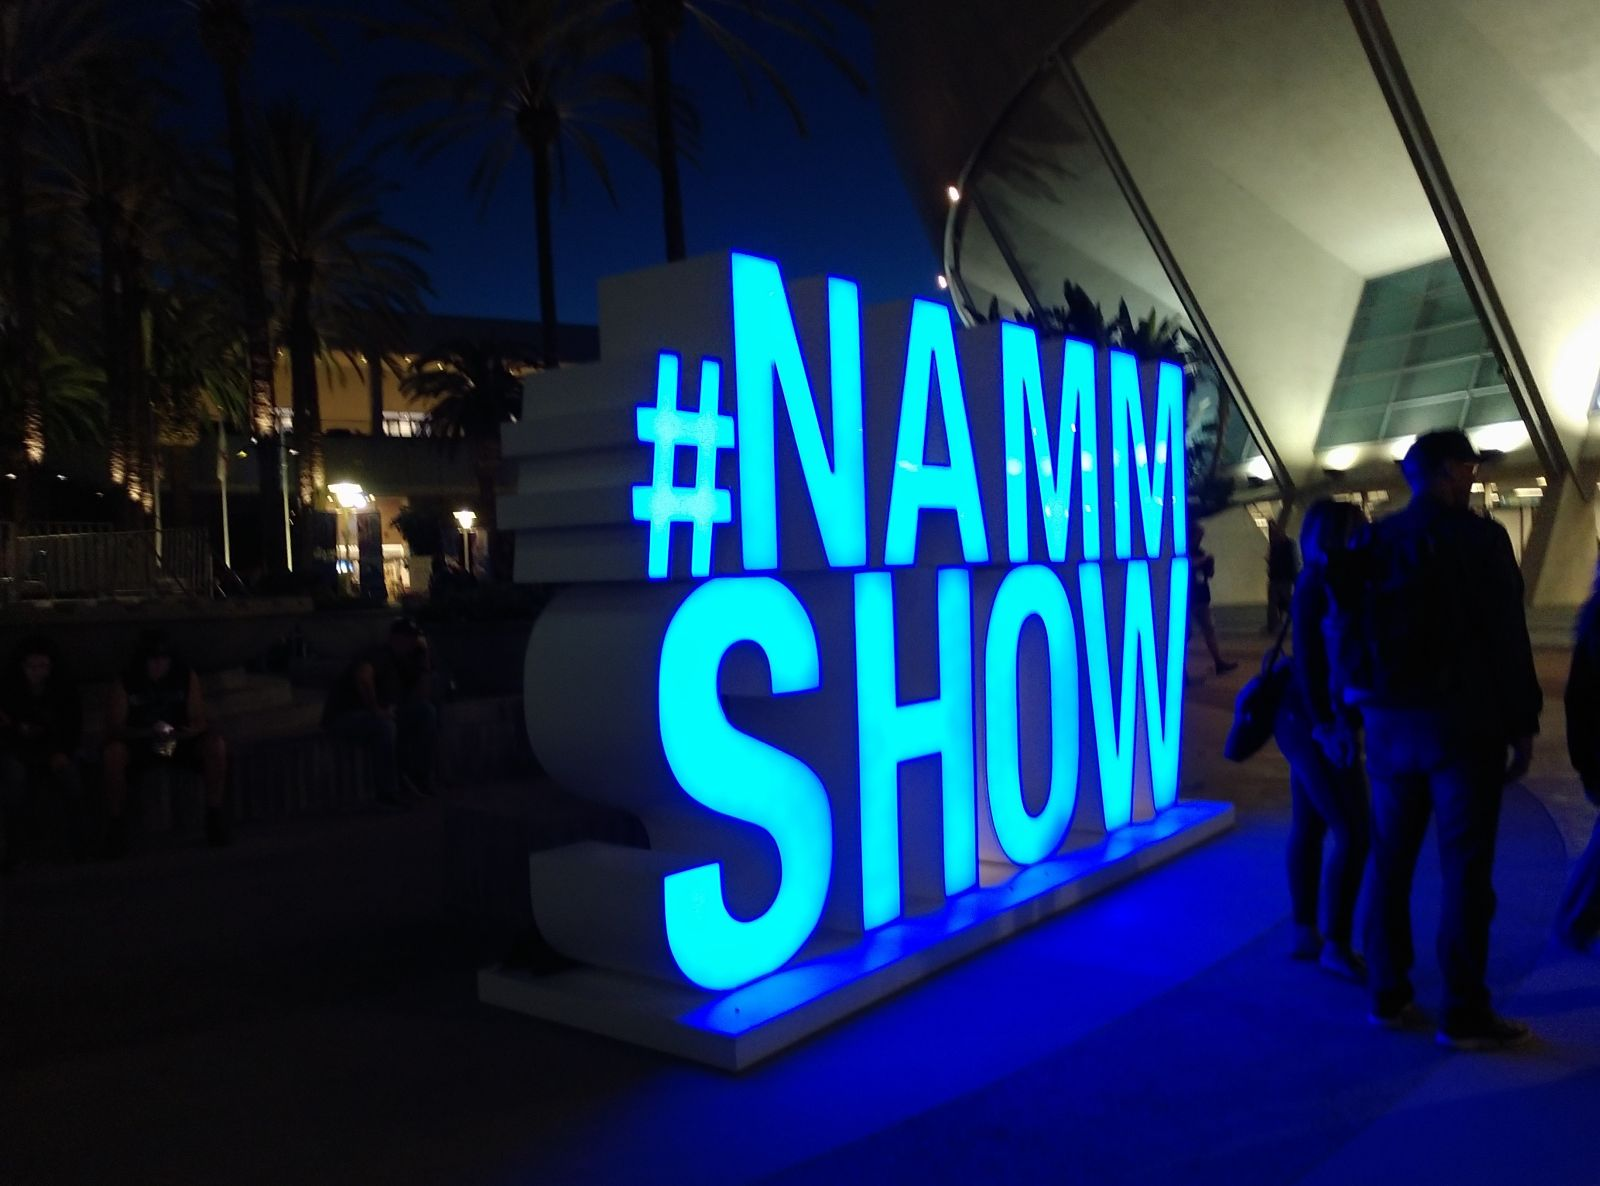 No NAMM Show in 2021, But Keep Connected!